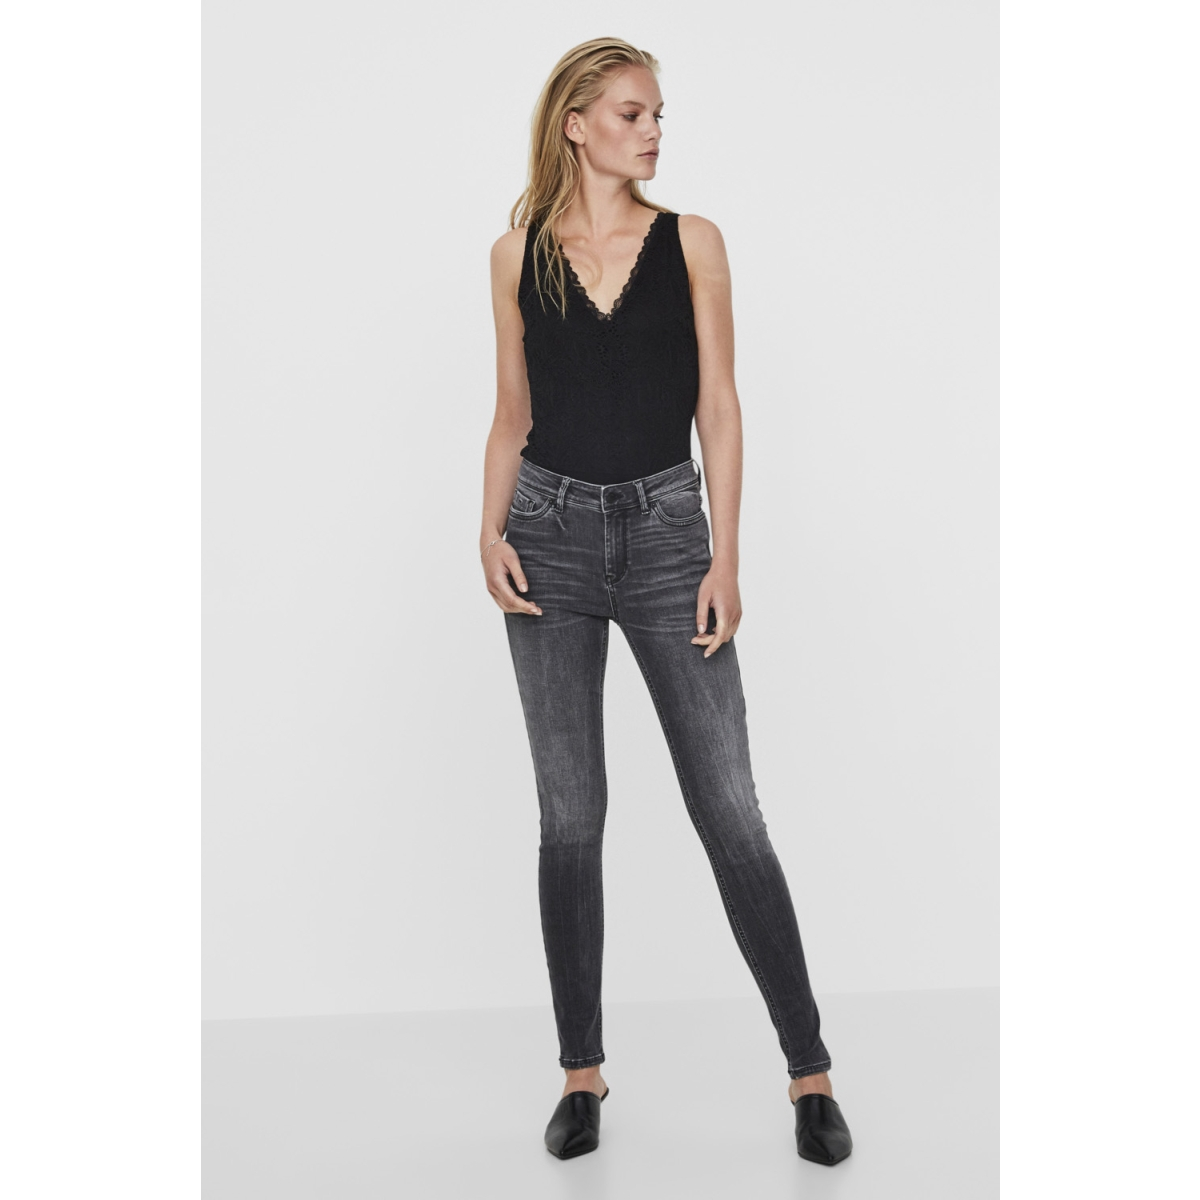 vmseven nw ss piping jeans am202 no 10191333 vero moda jeans black